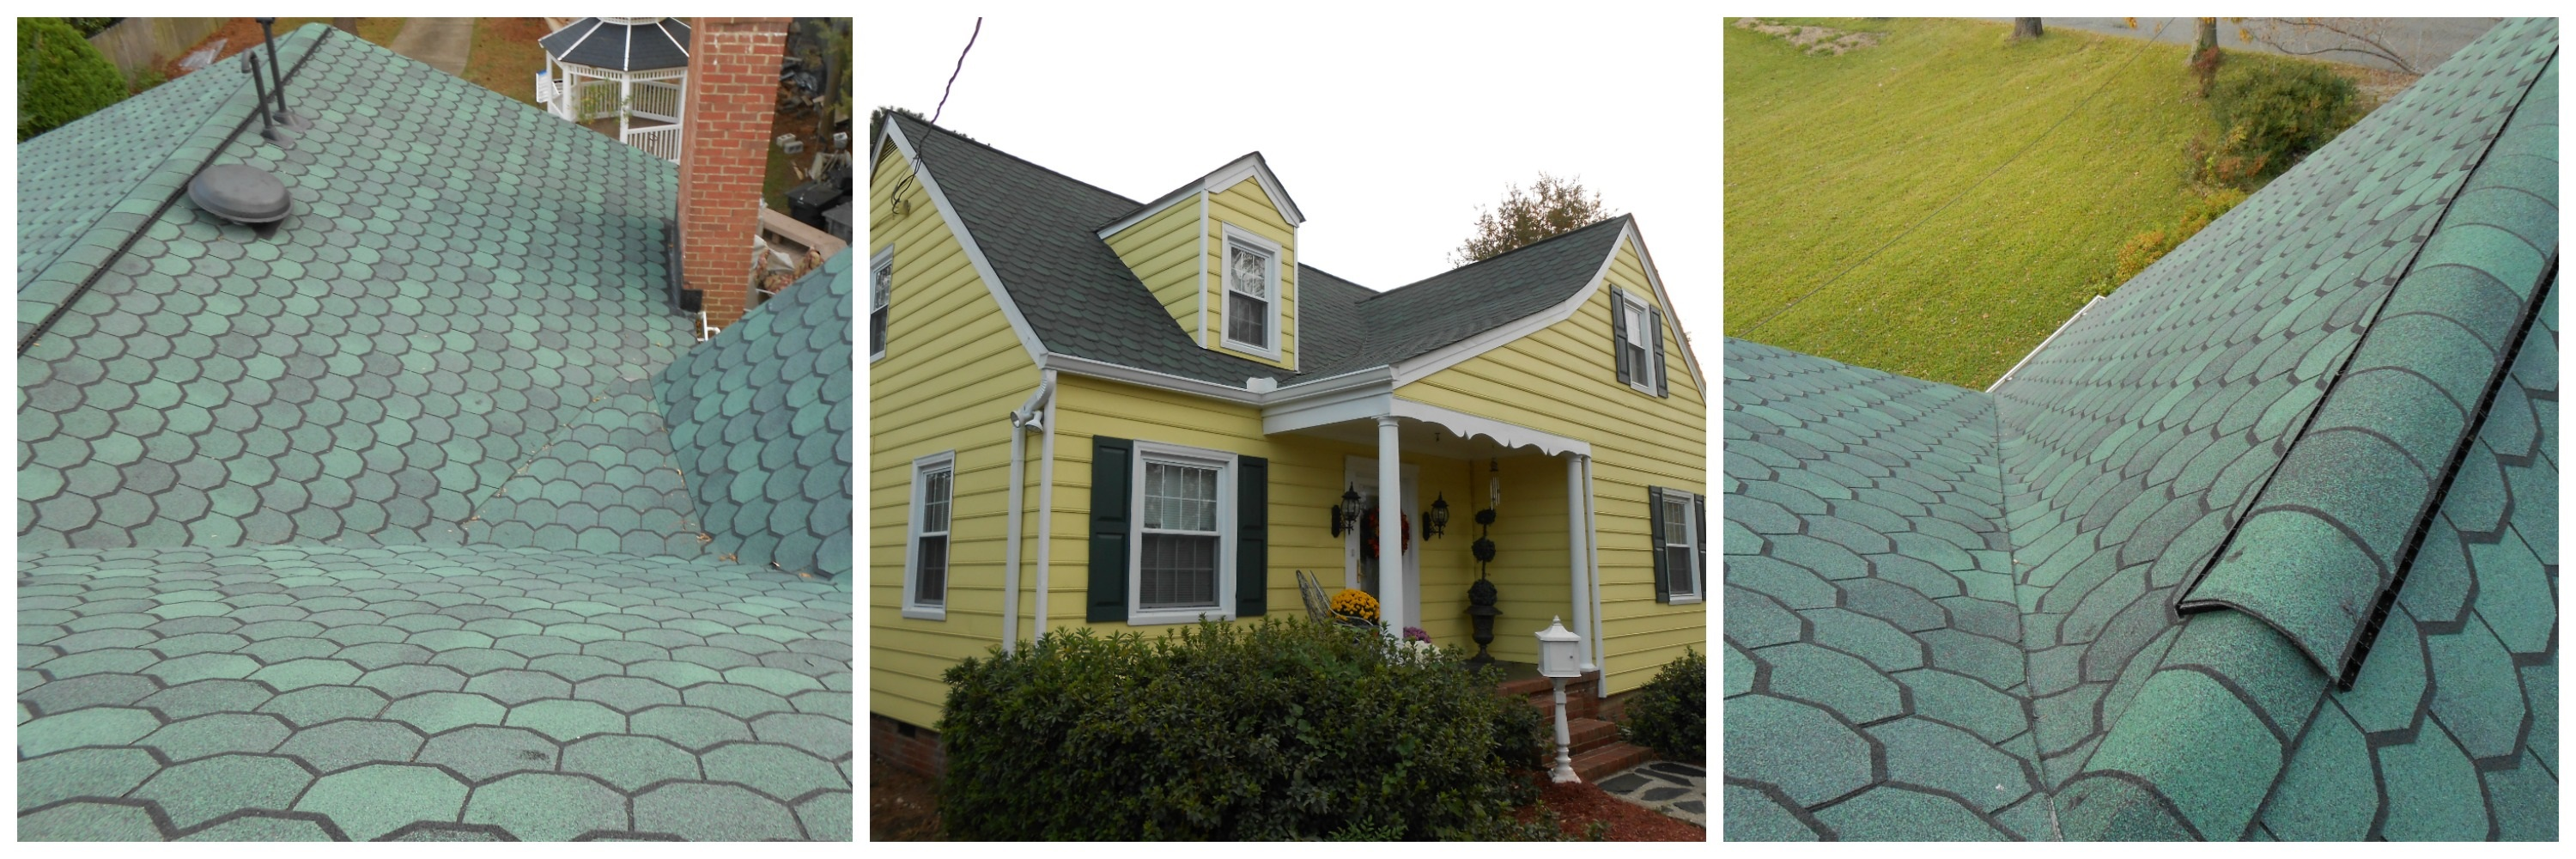 About Hampton Roads Roofing Company Roofing Amp Exteriors